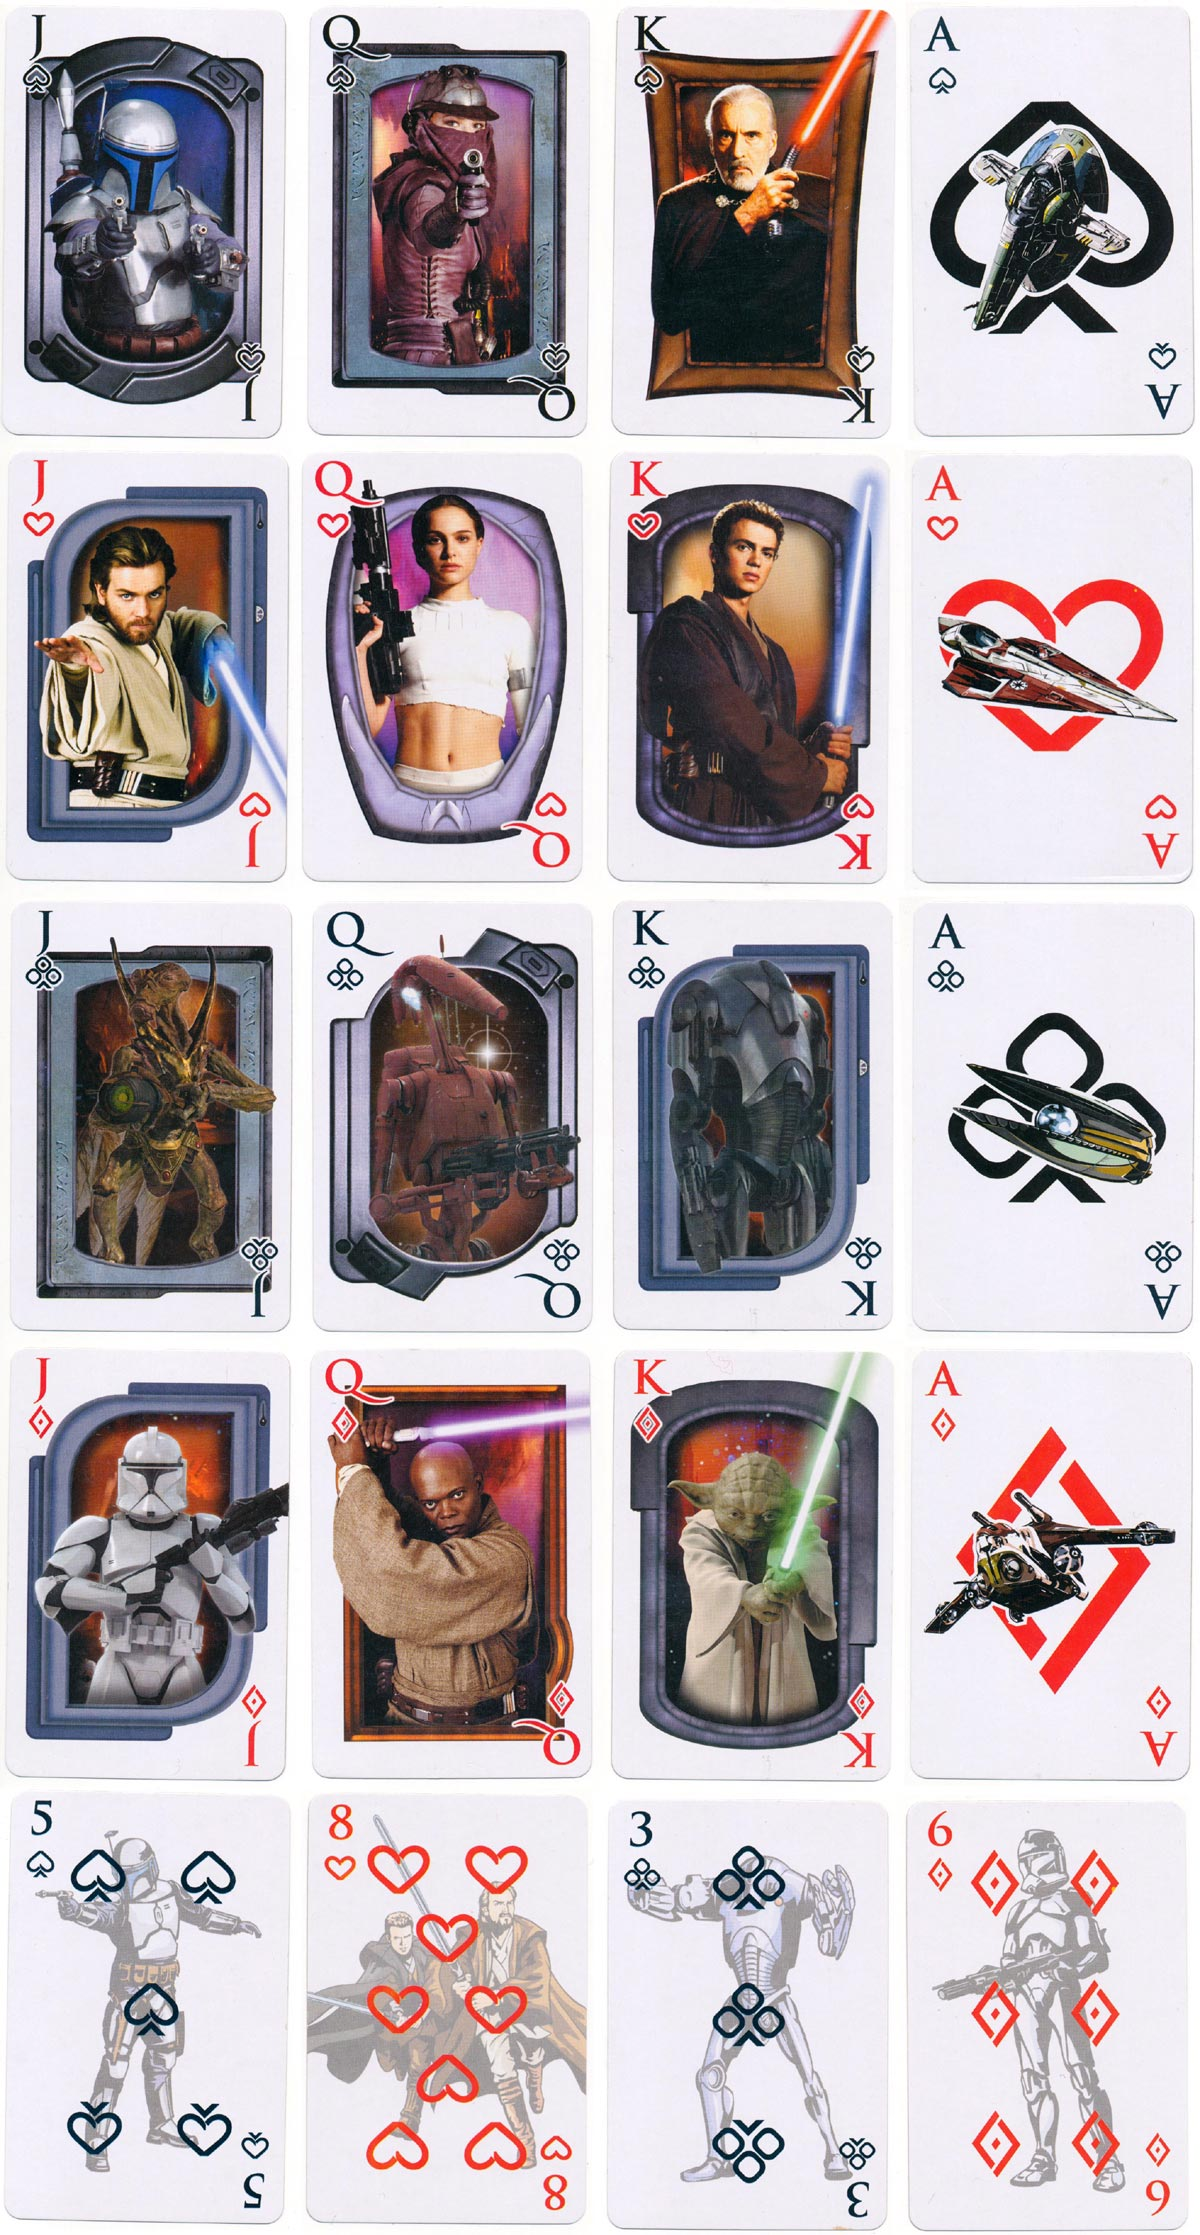 Star Wars Playing Cards produced by Character Games  © 2002 Lucasfilm Ltd